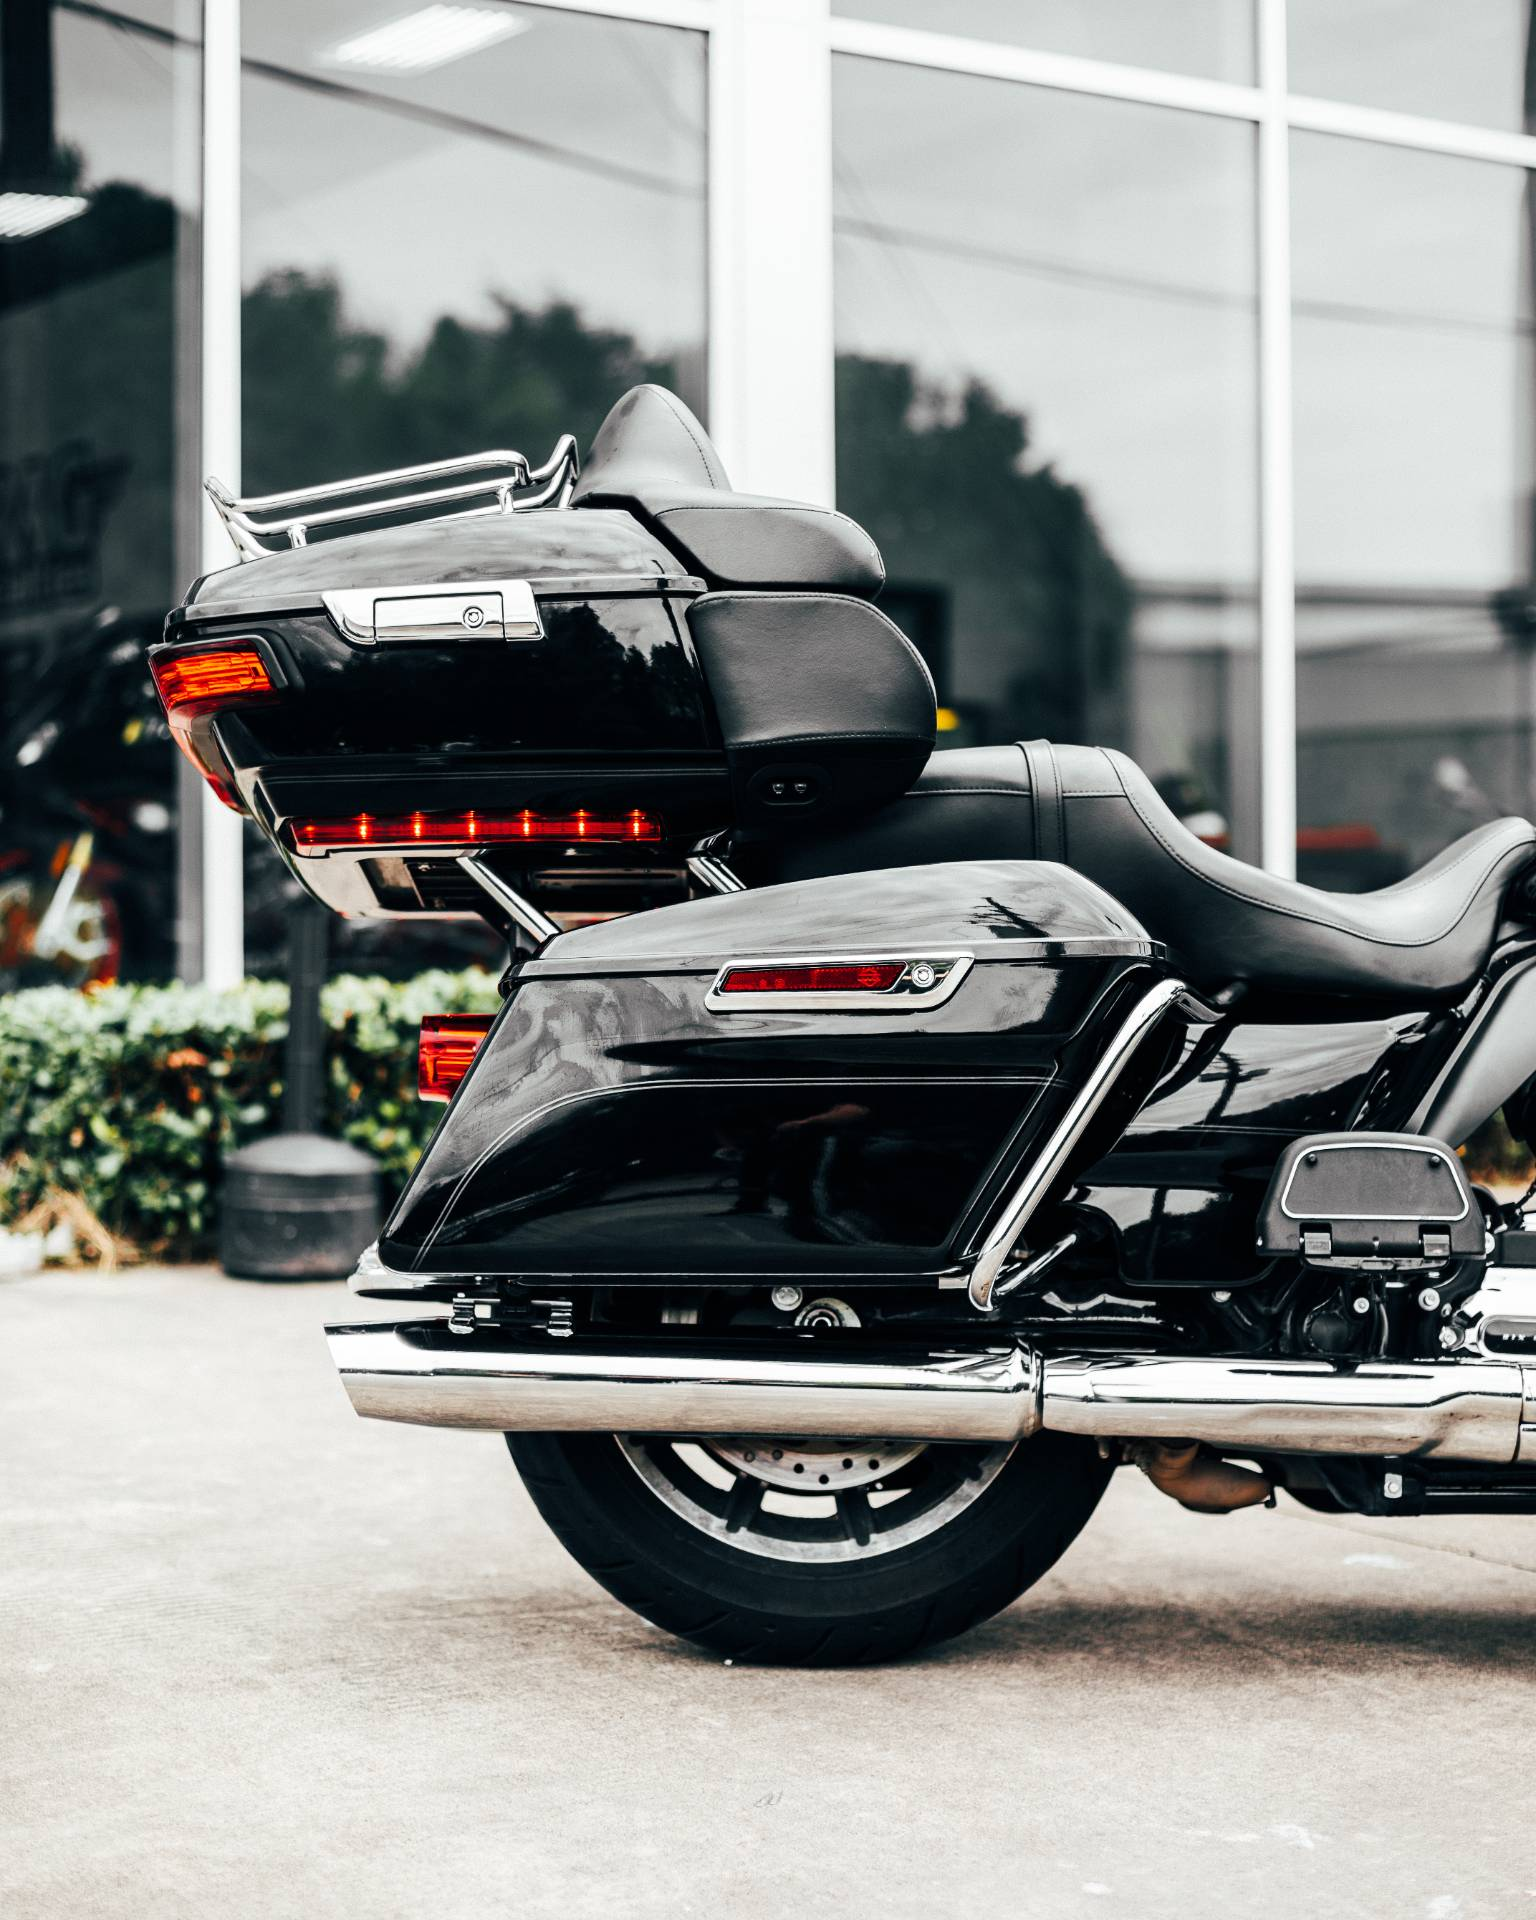 2019 Harley-Davidson Electra Glide® Ultra Classic® in Houston, Texas - Photo 3